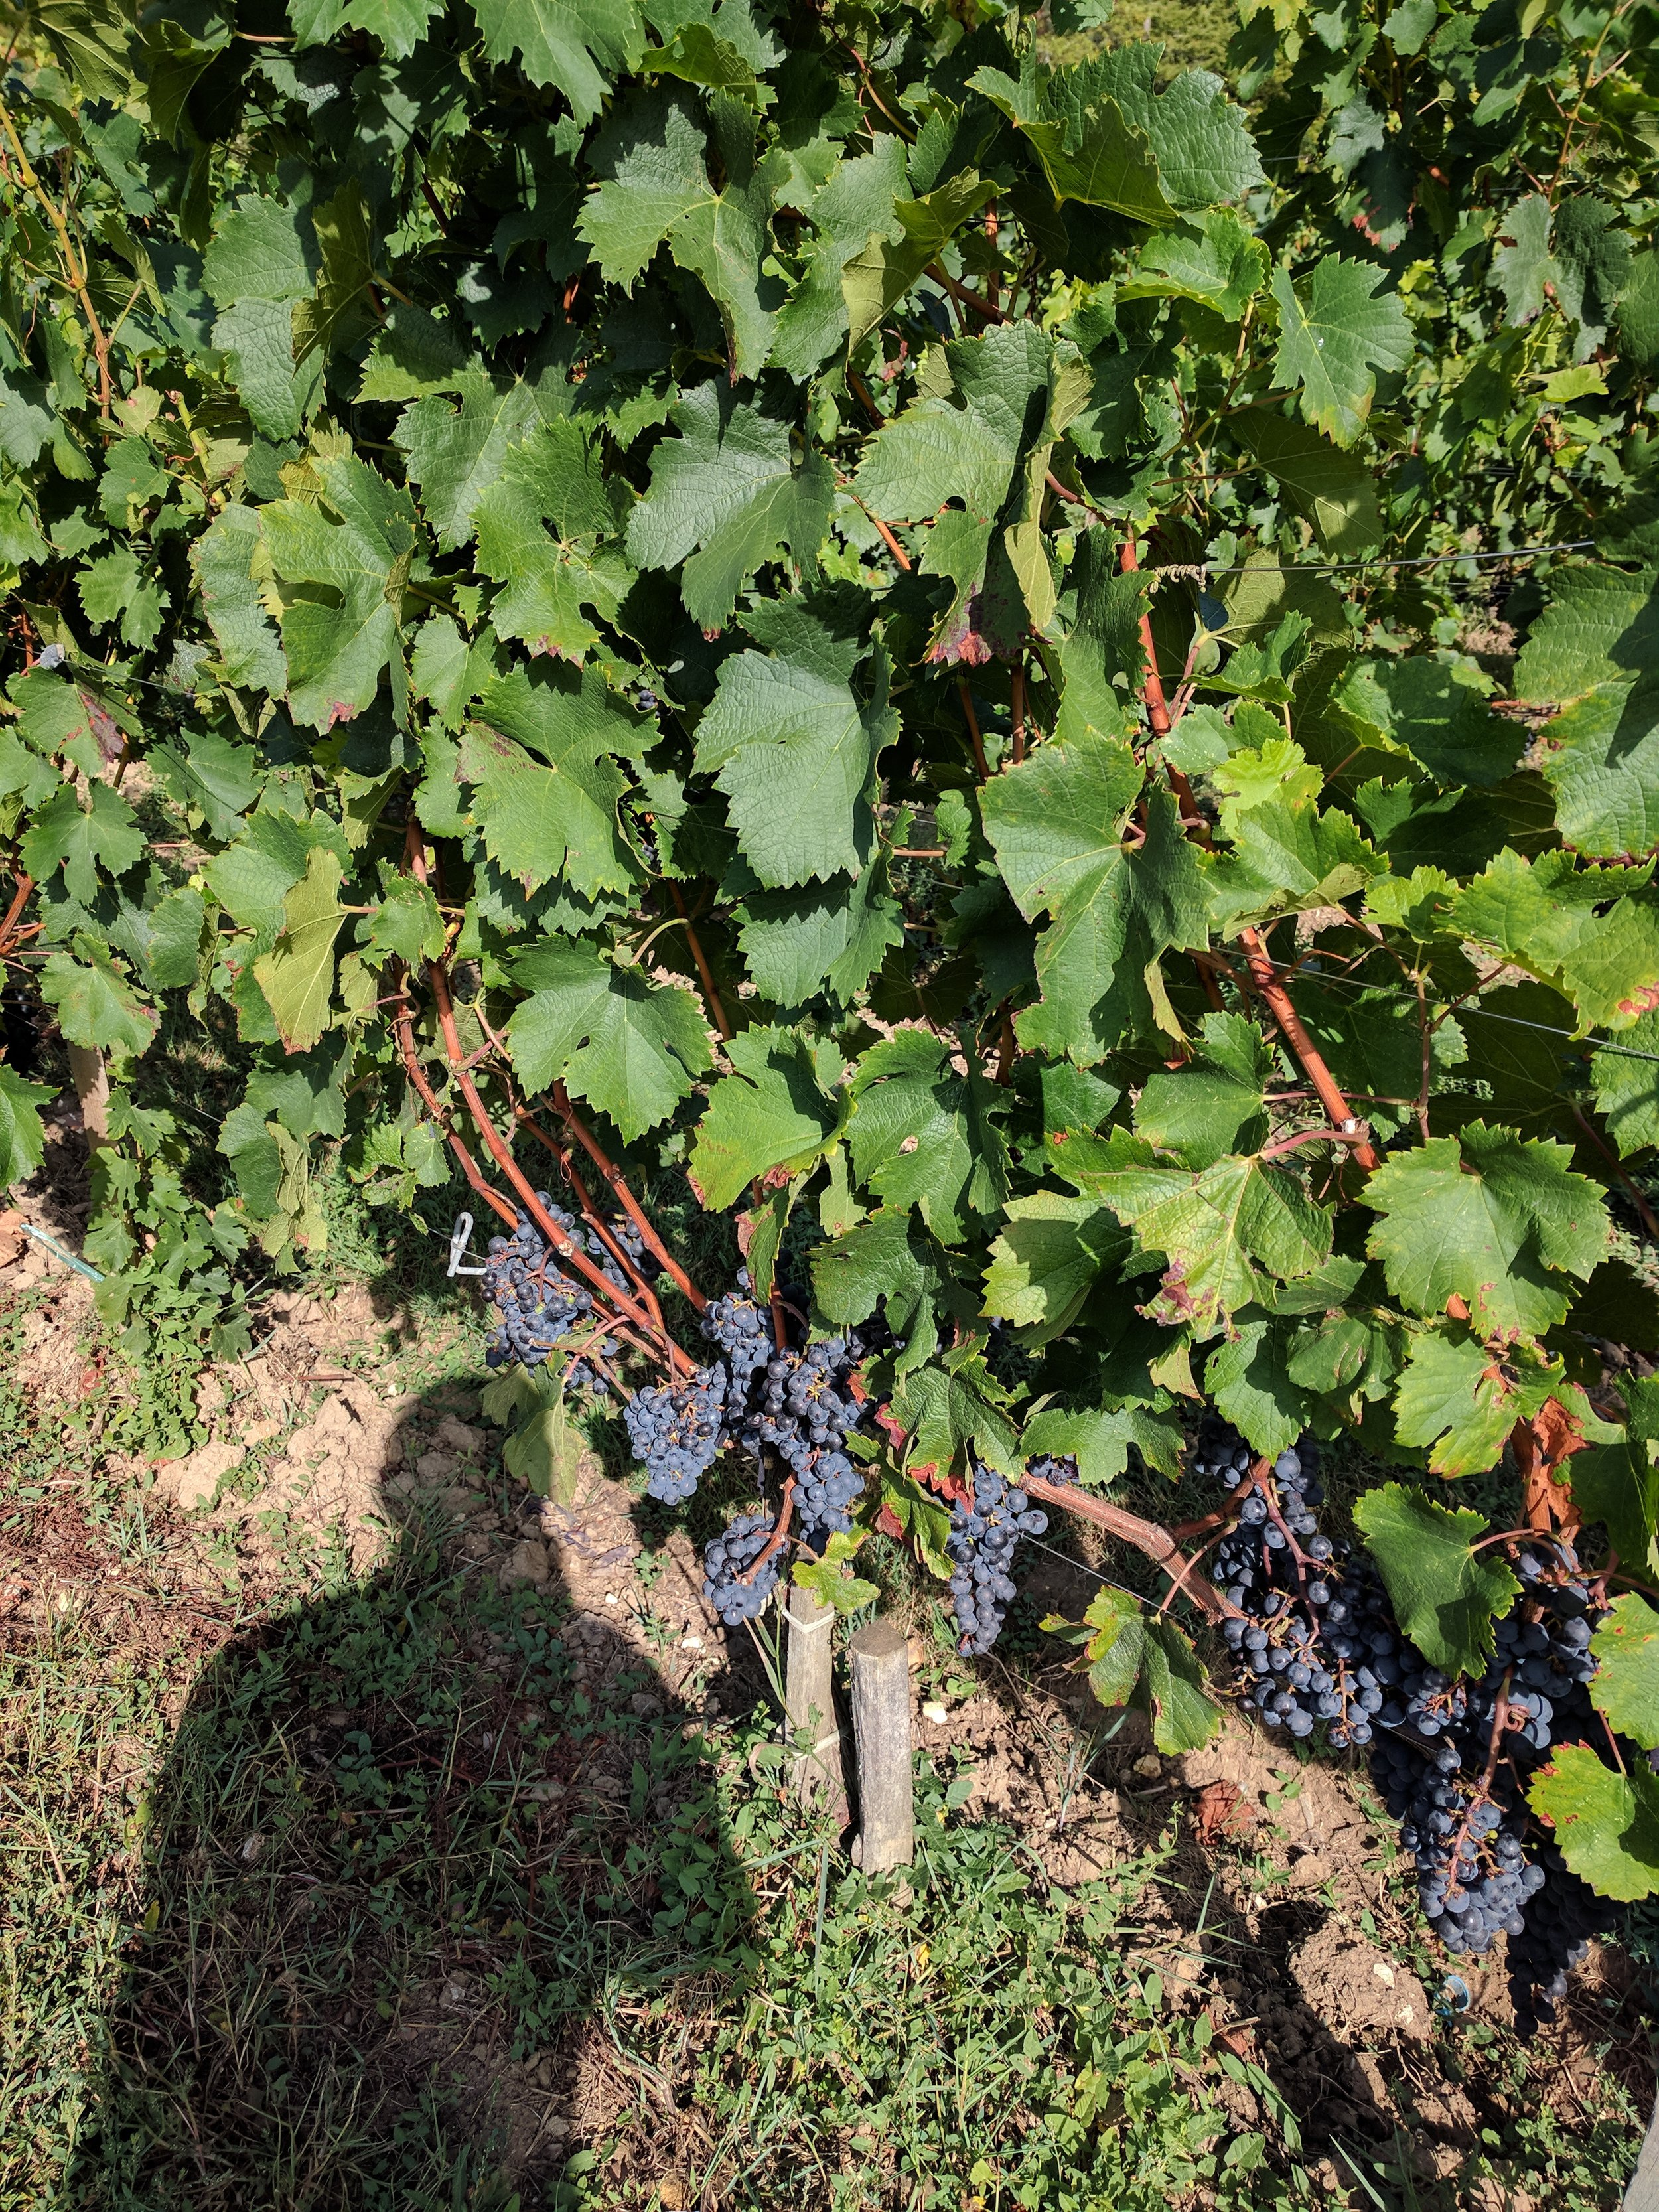 - ...While 6 miles away at Chateau Bernateau in Saint Emilion, they had a healthy growing season with 7-8 bunches on each stock.